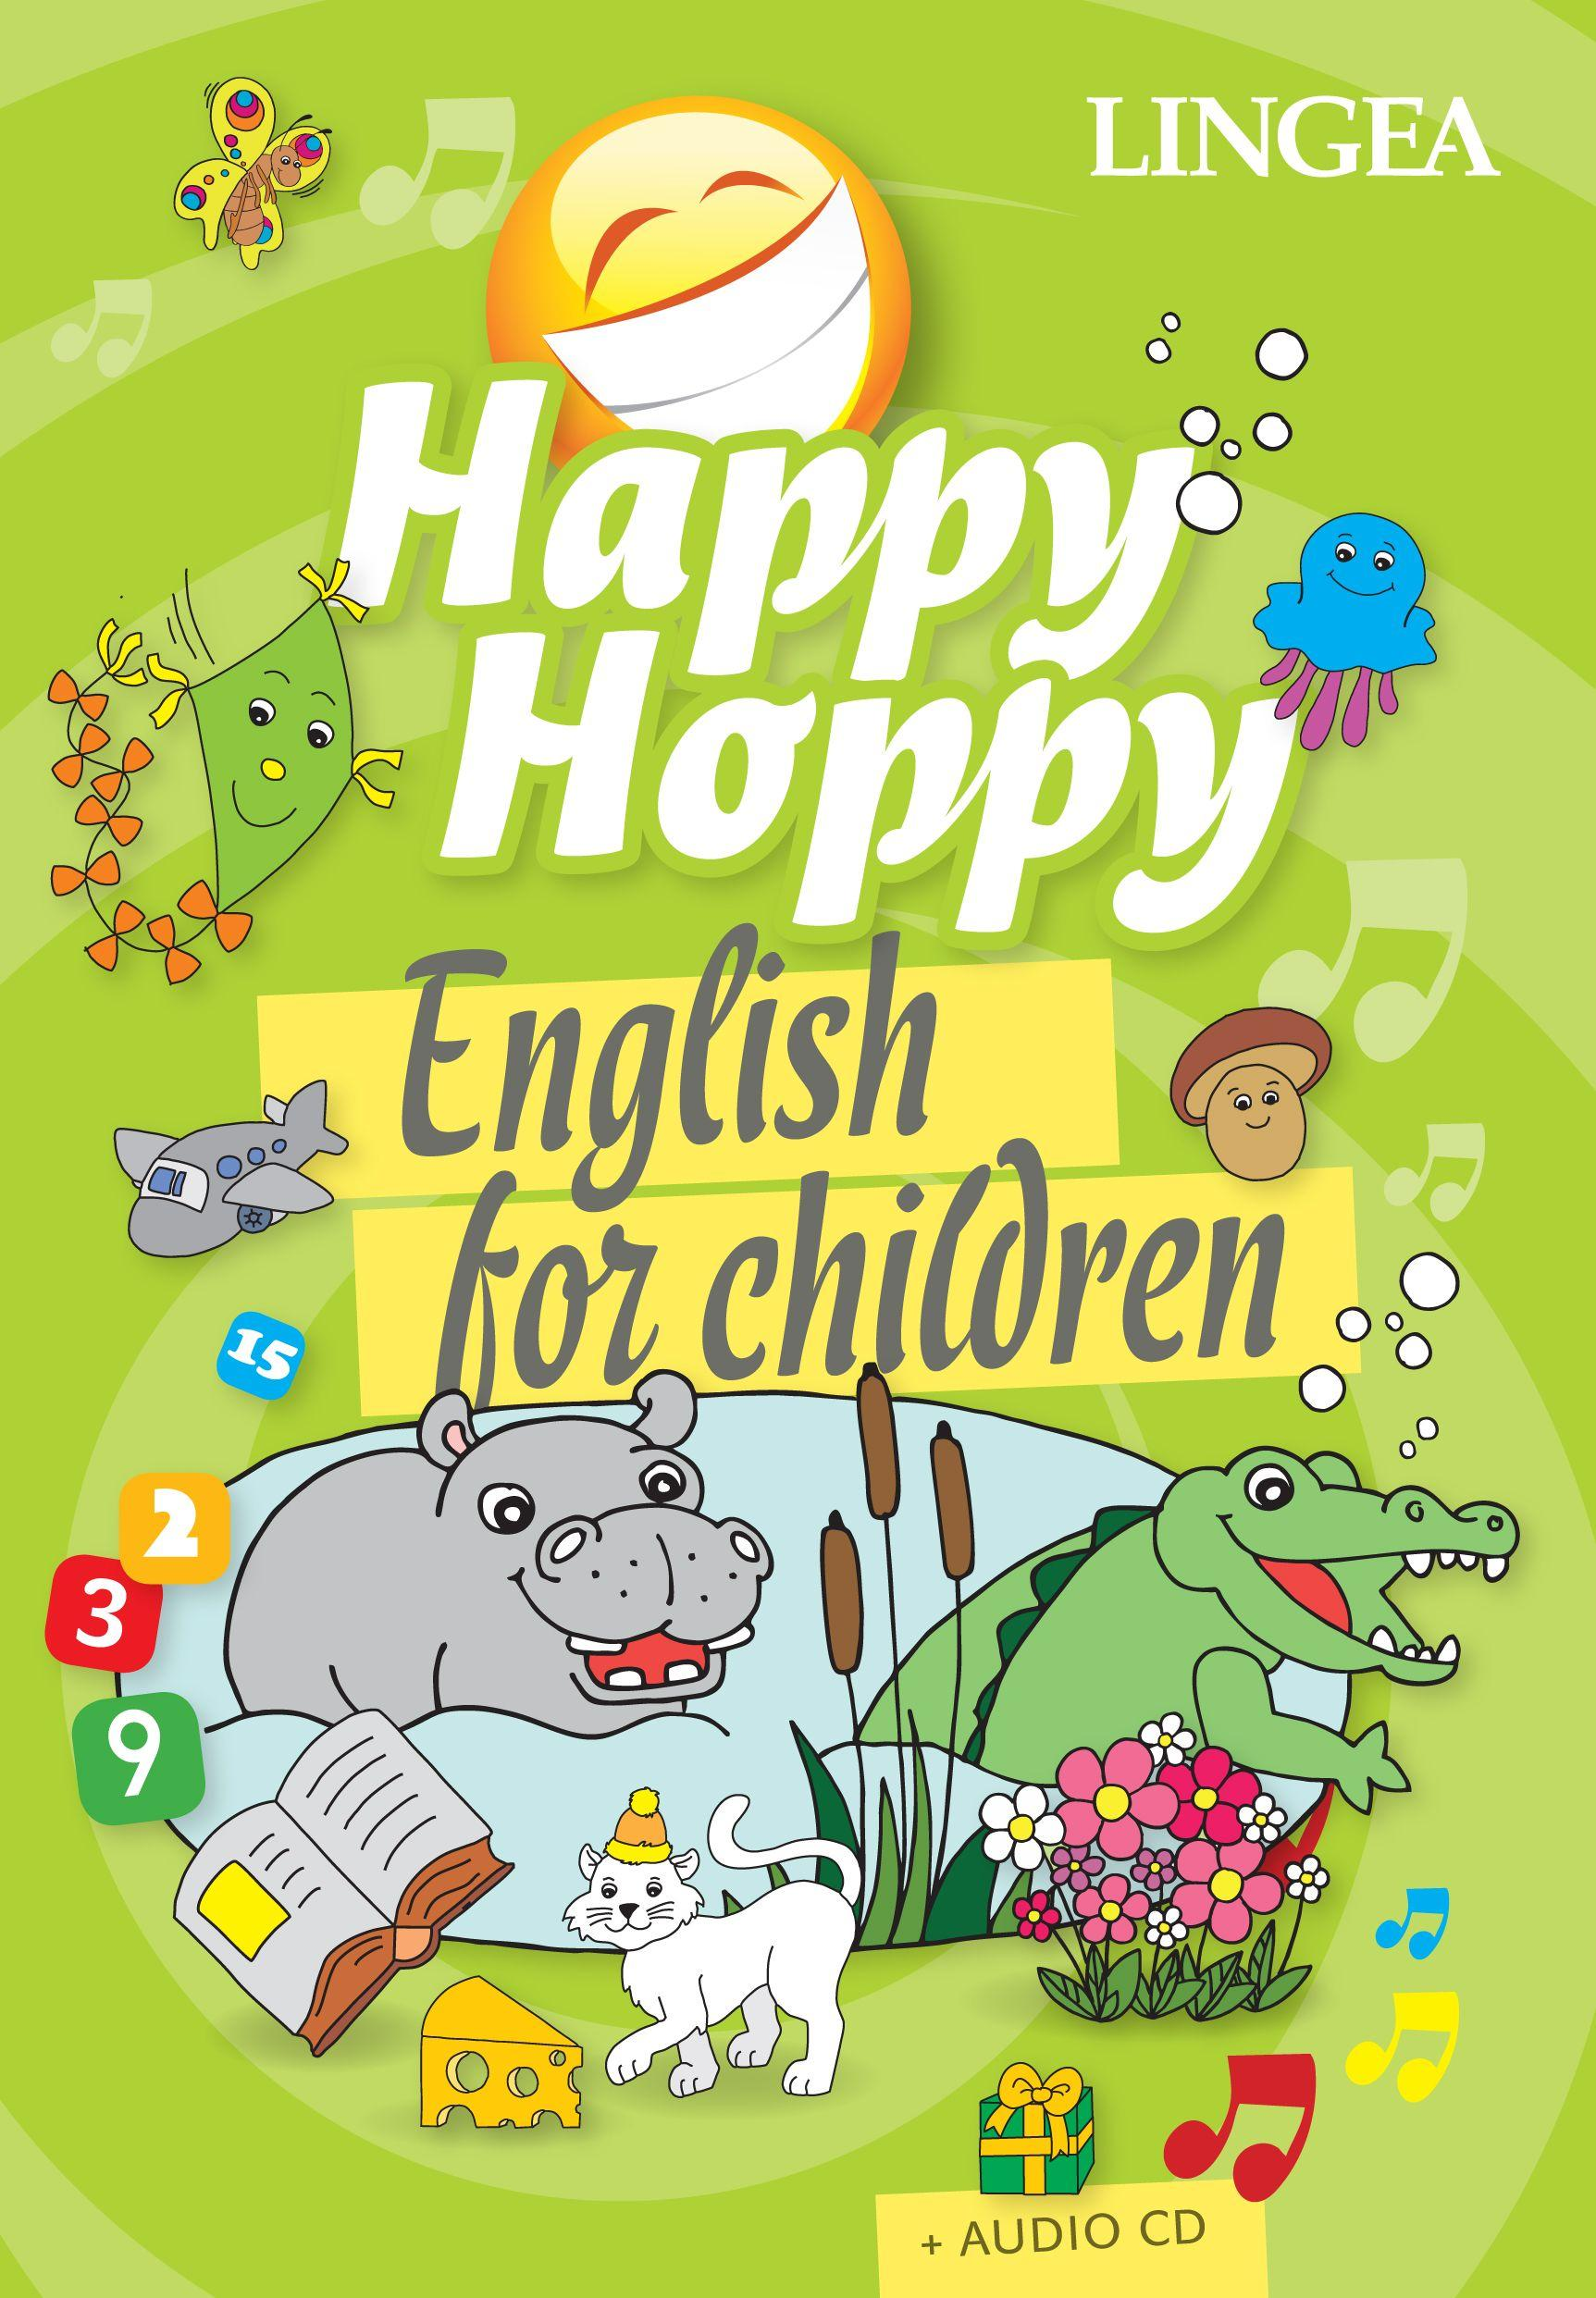 HAPPY HOPPY KÖNYV - ENGLISH FOR CHILDREN + AUDIO CD